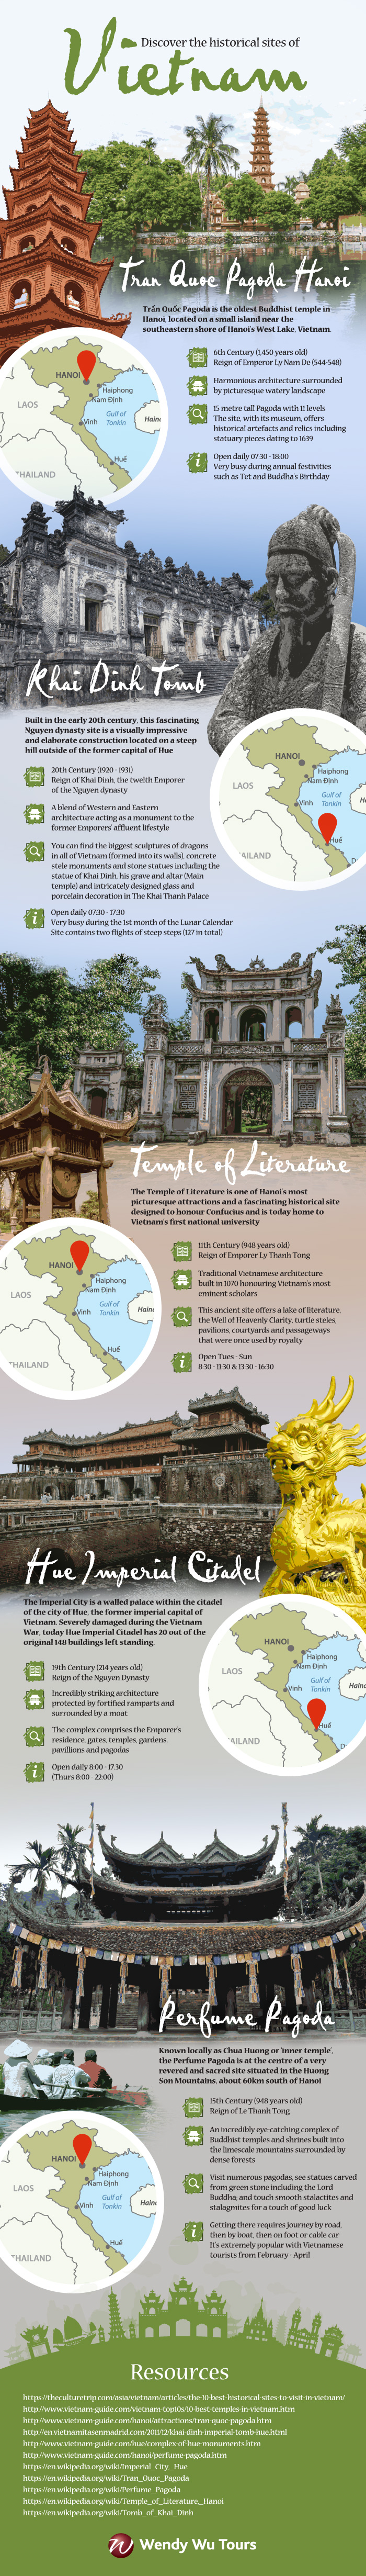 historical sites of Vietnam infographic